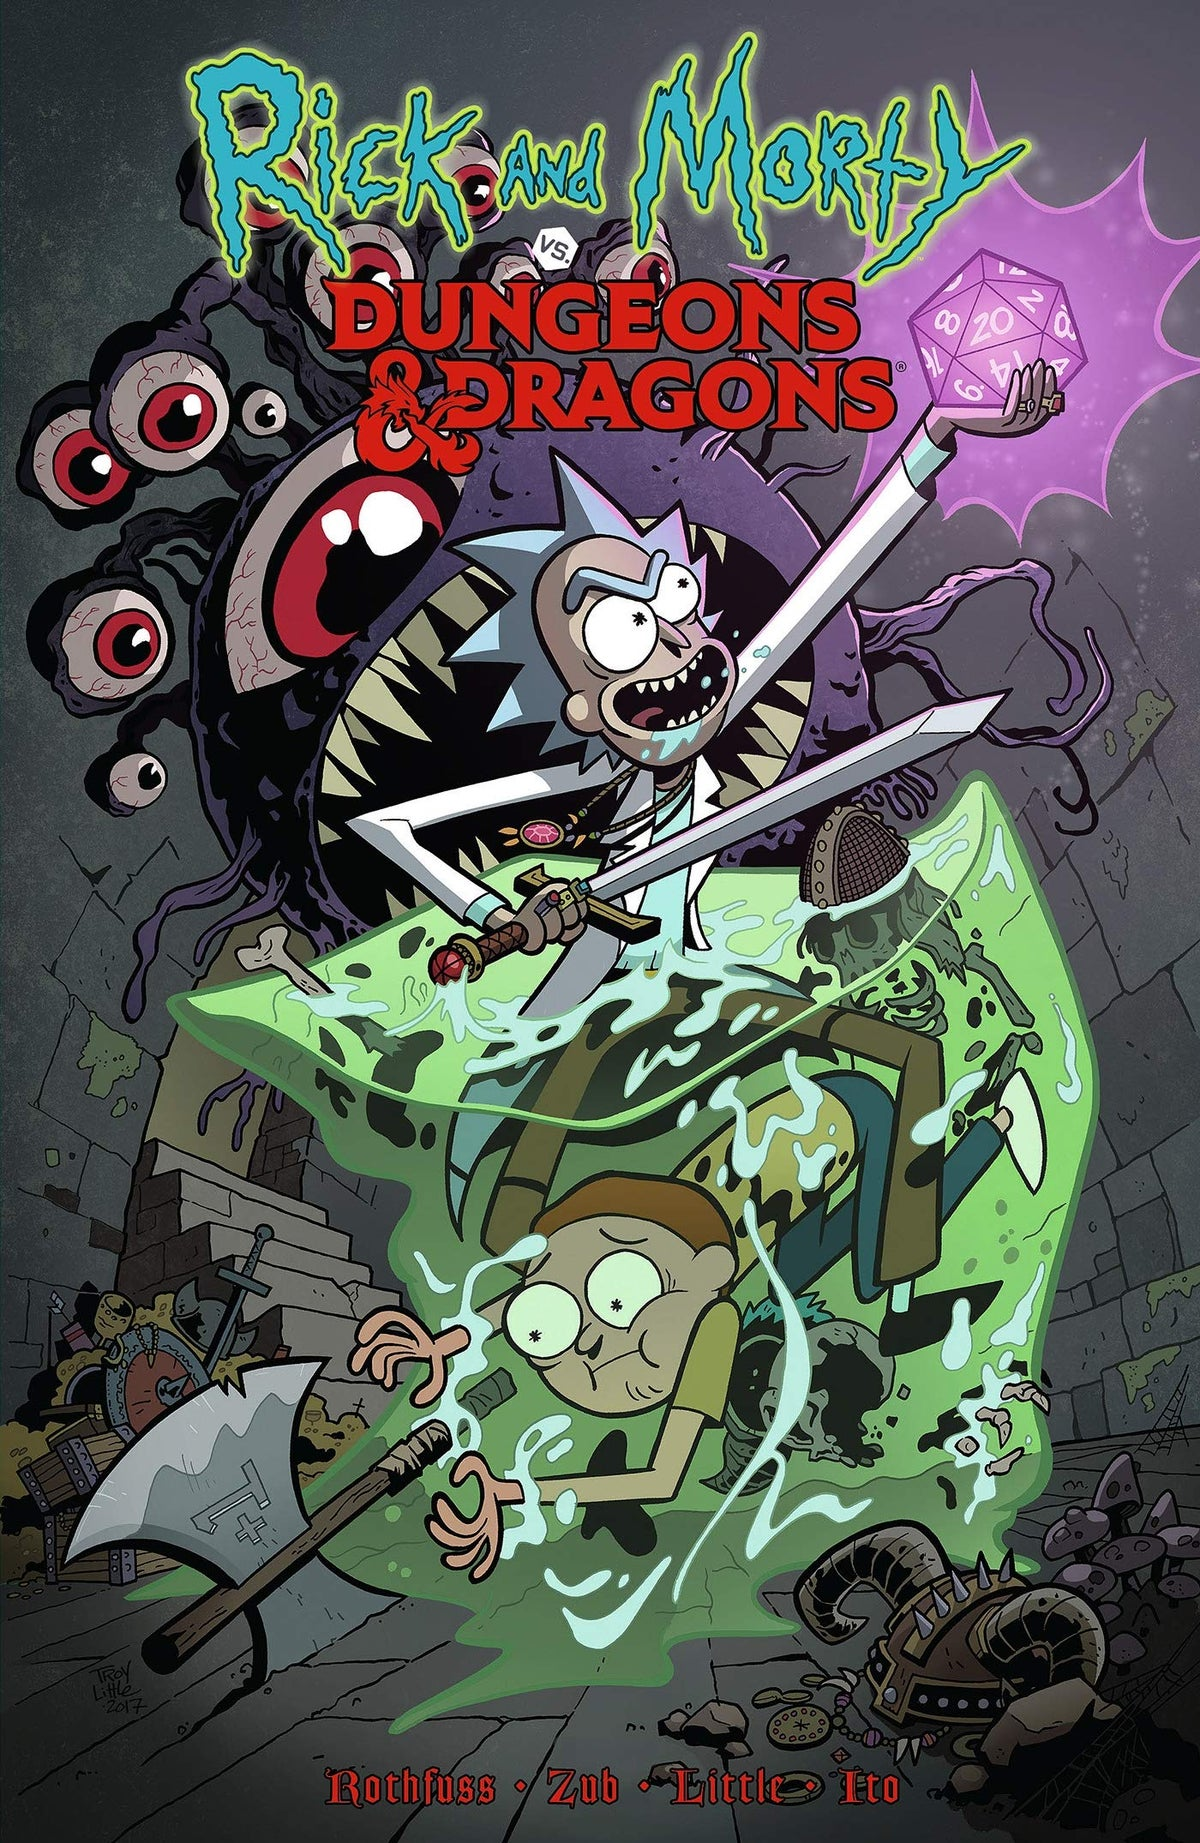 Rick & Morty VS Dungeons & Dragons Vol. 1